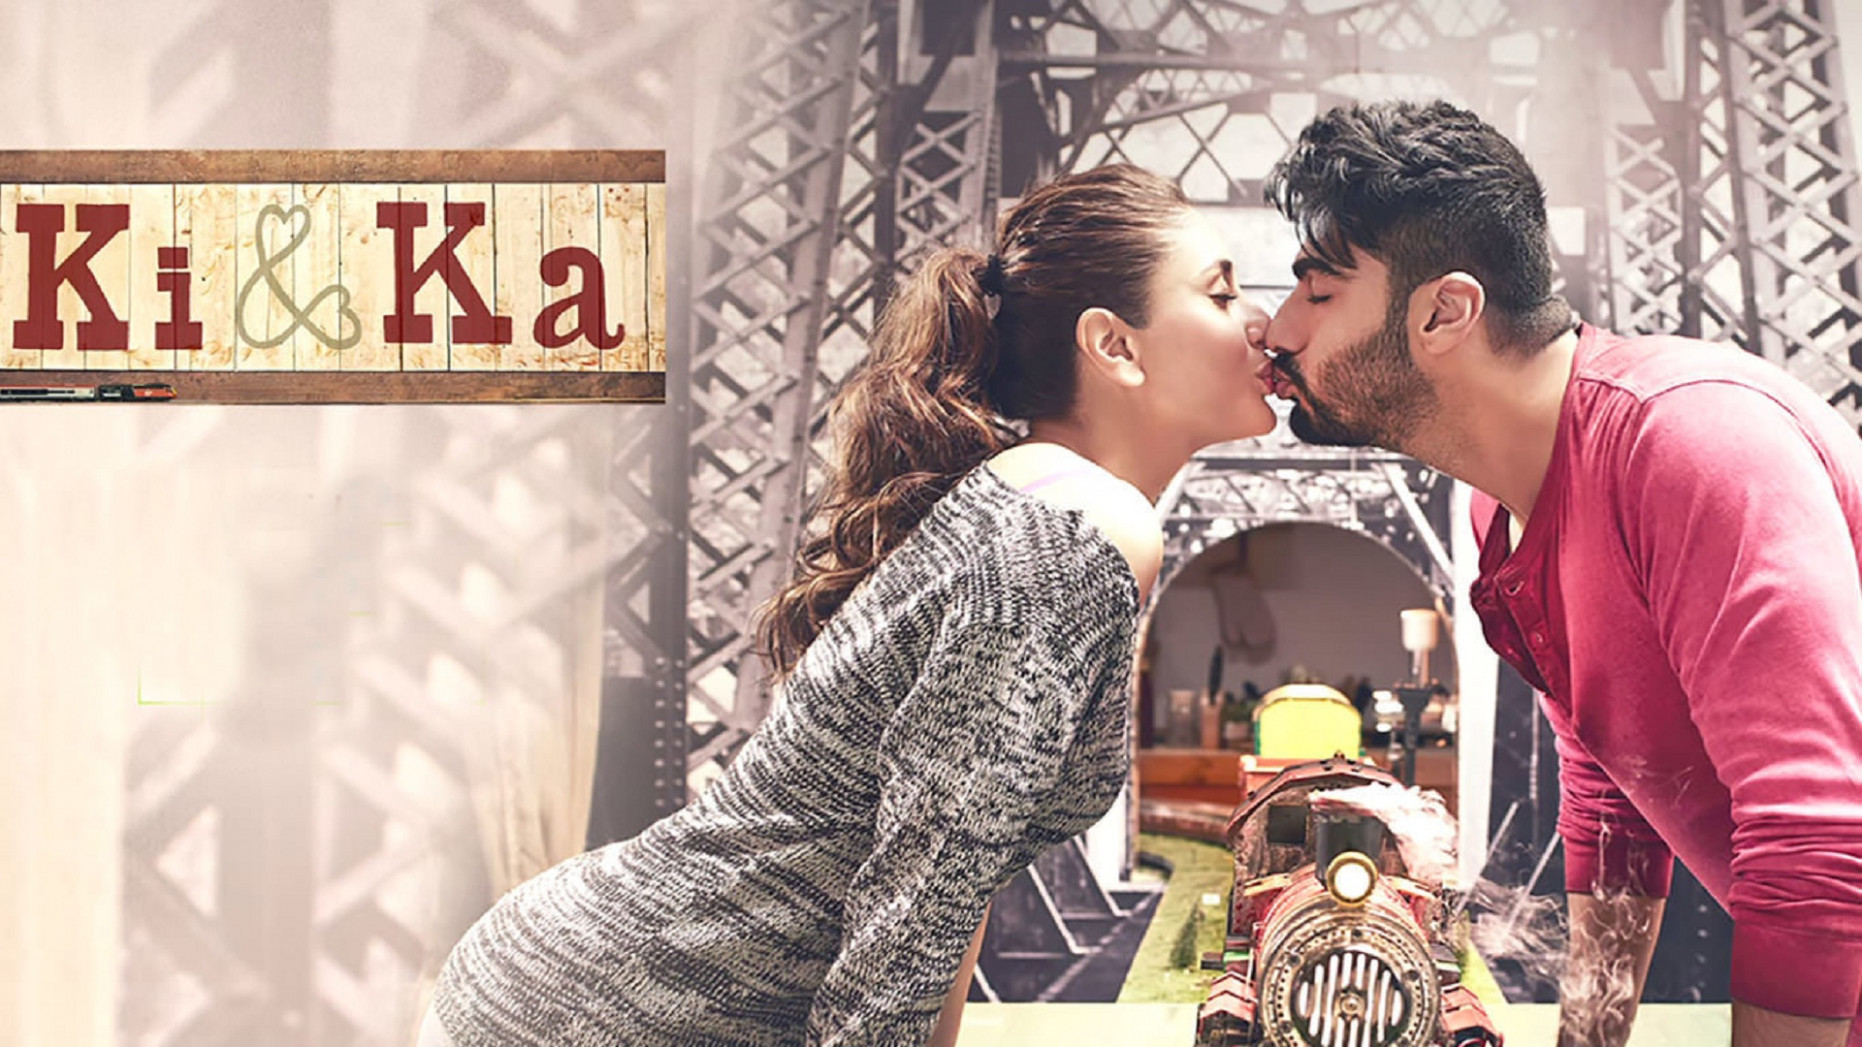 Lips kissing bollywood couple HD images | HD Wallpapers Rocks